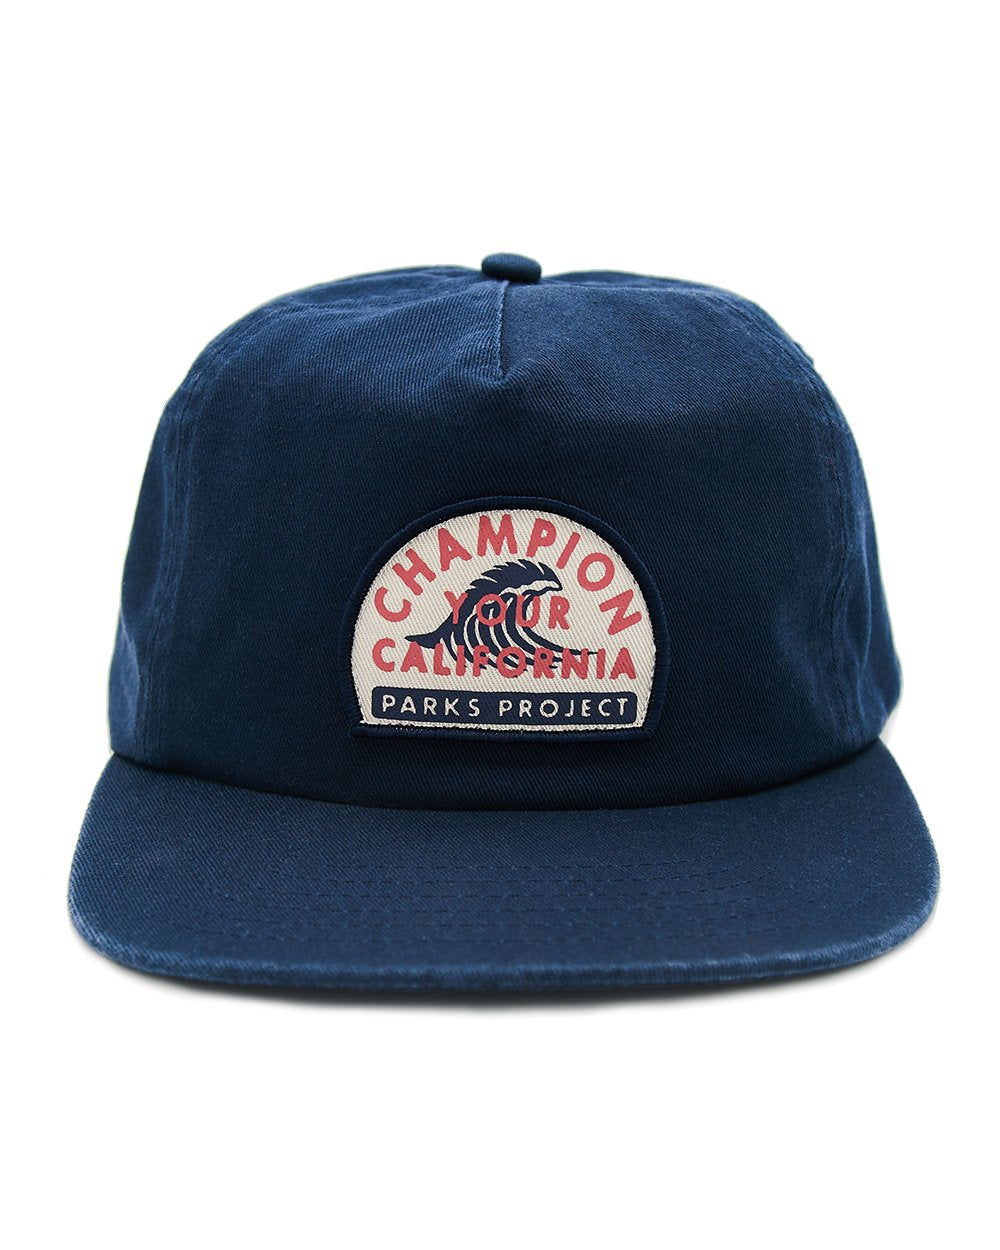 Champion Your California Hat | Parks Project | California State Park Hat